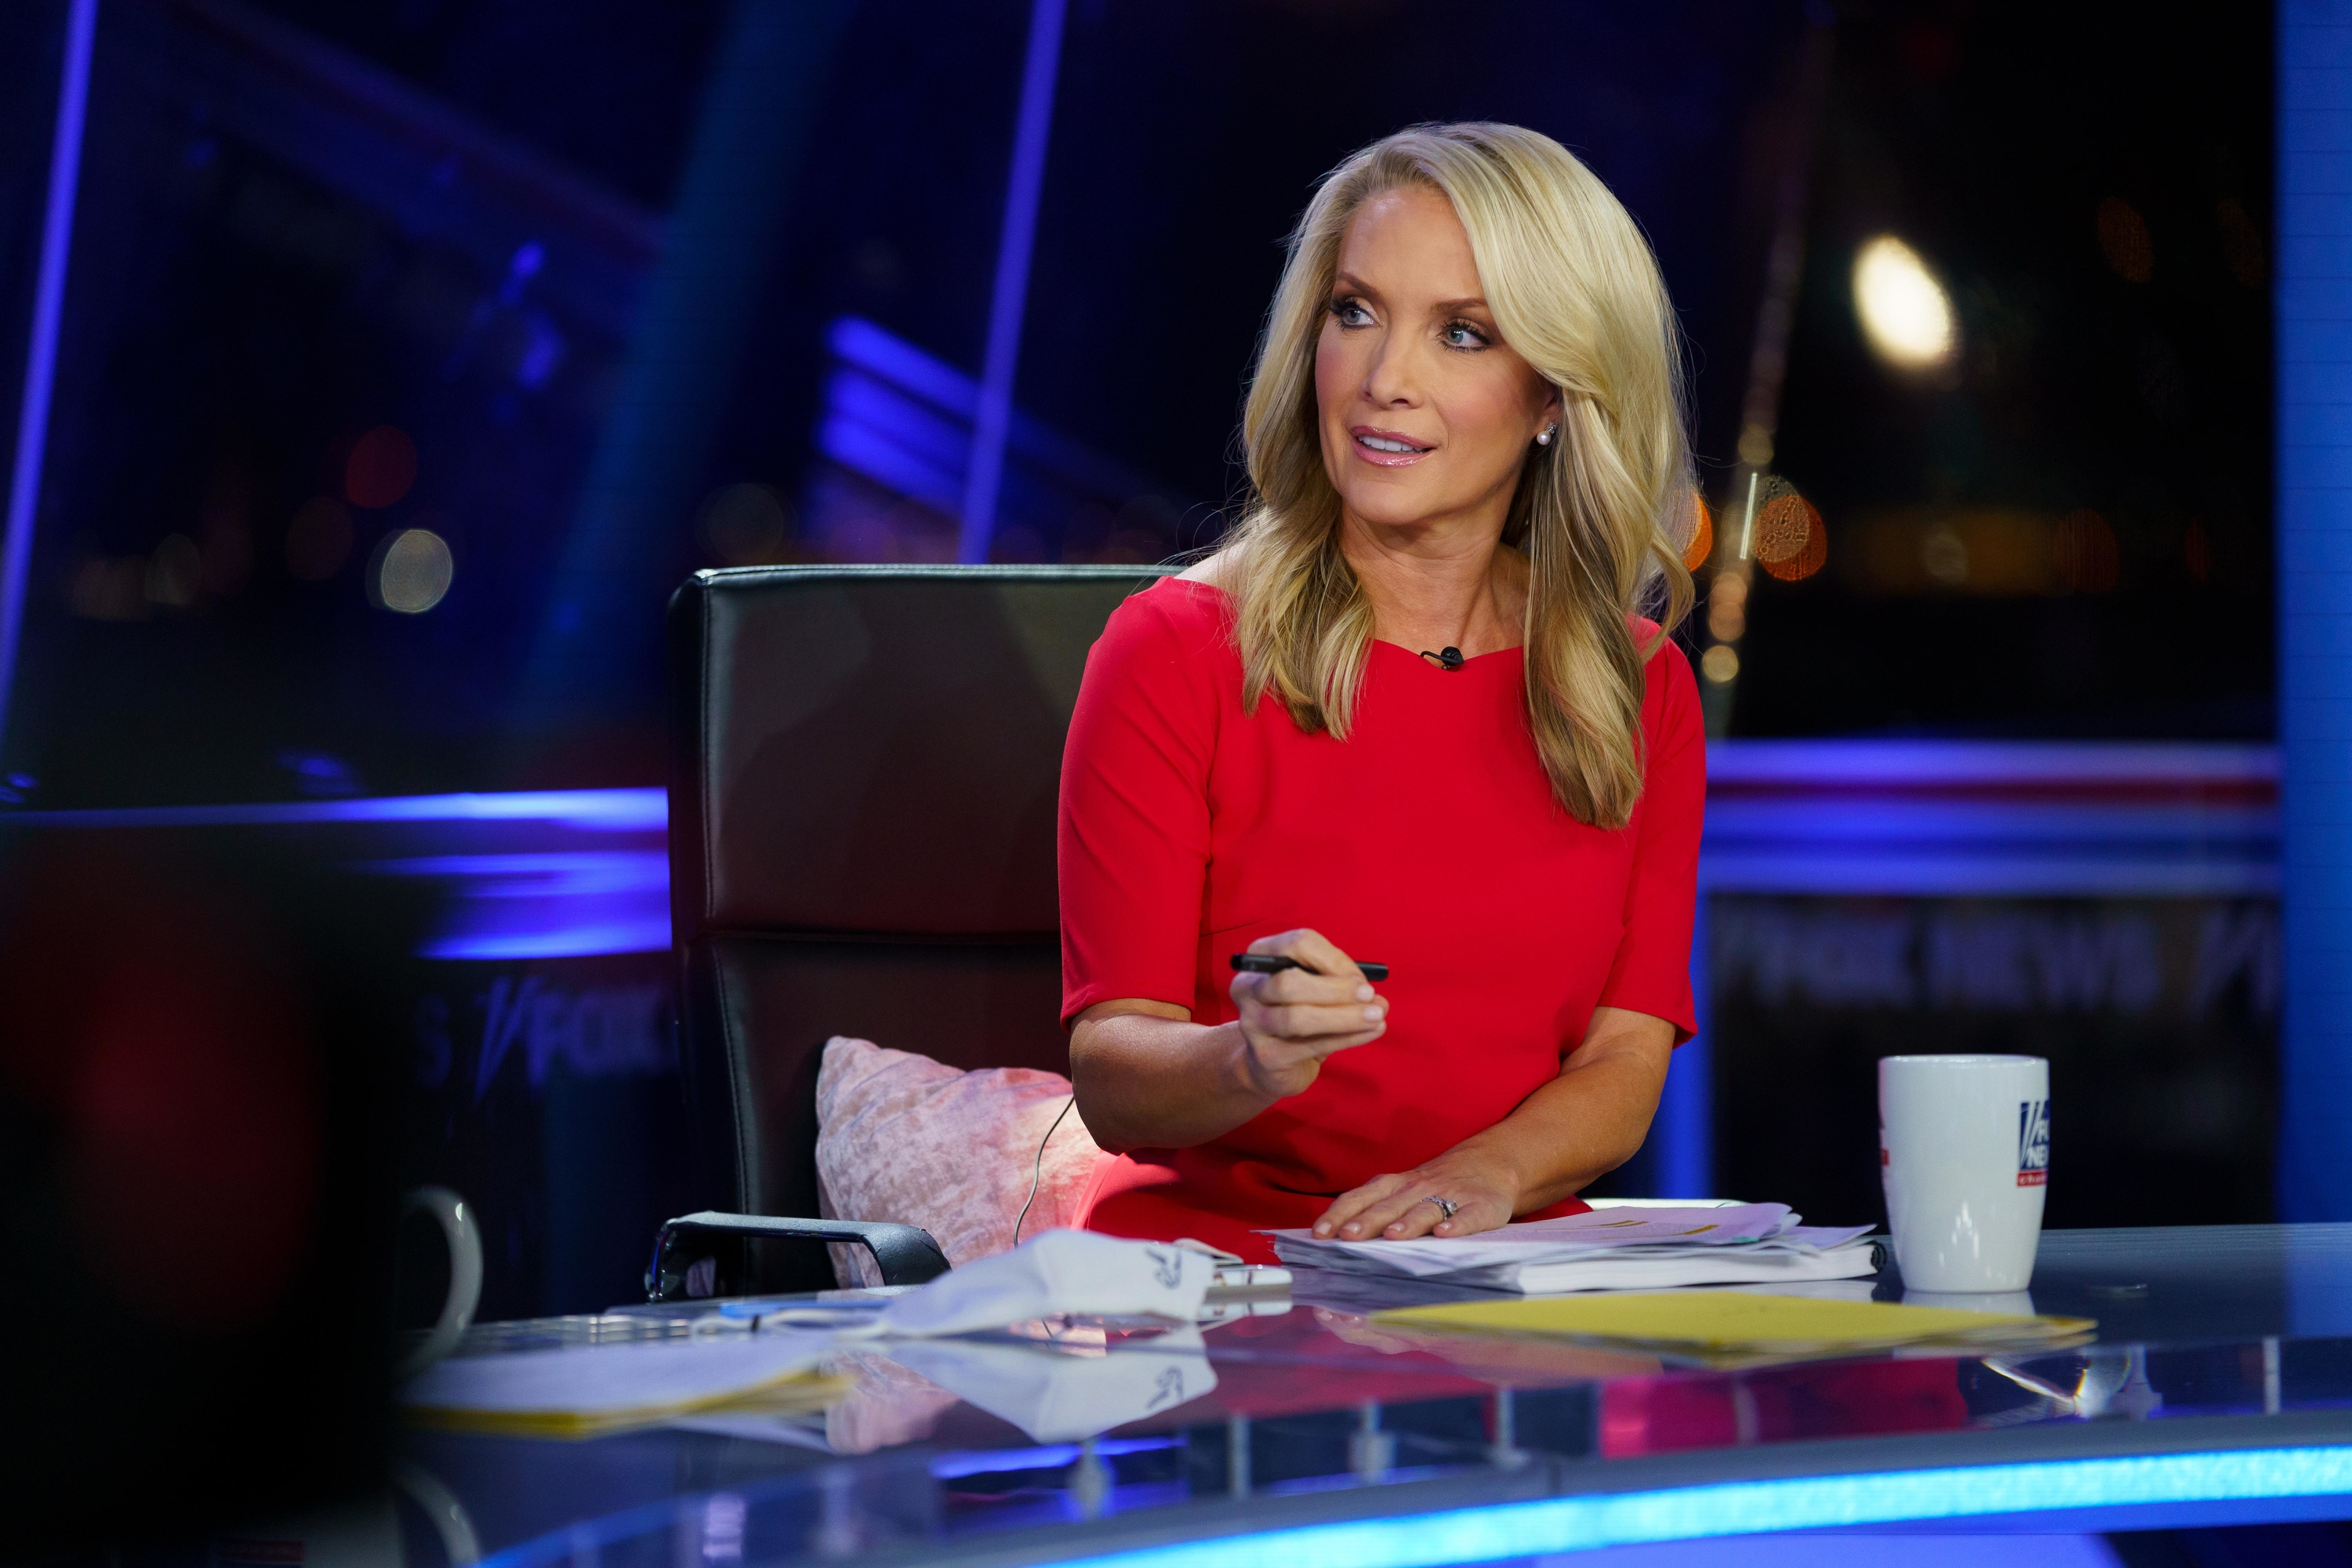 Fox News showcases optimistic news to attract advertisers